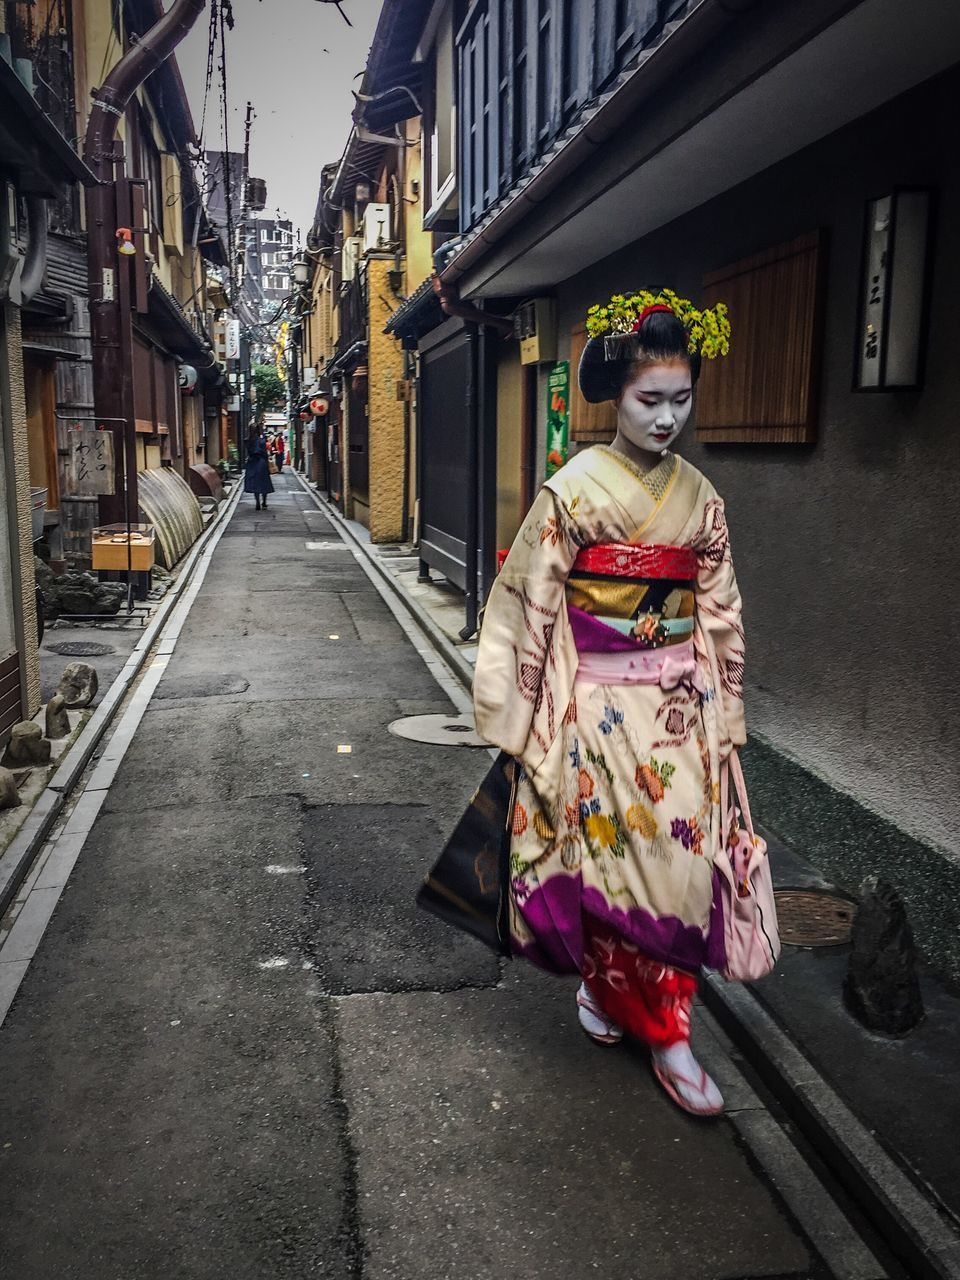 building exterior, real people, built structure, architecture, traditional clothing, one person, kimono, full length, outdoors, women, day, sky, people